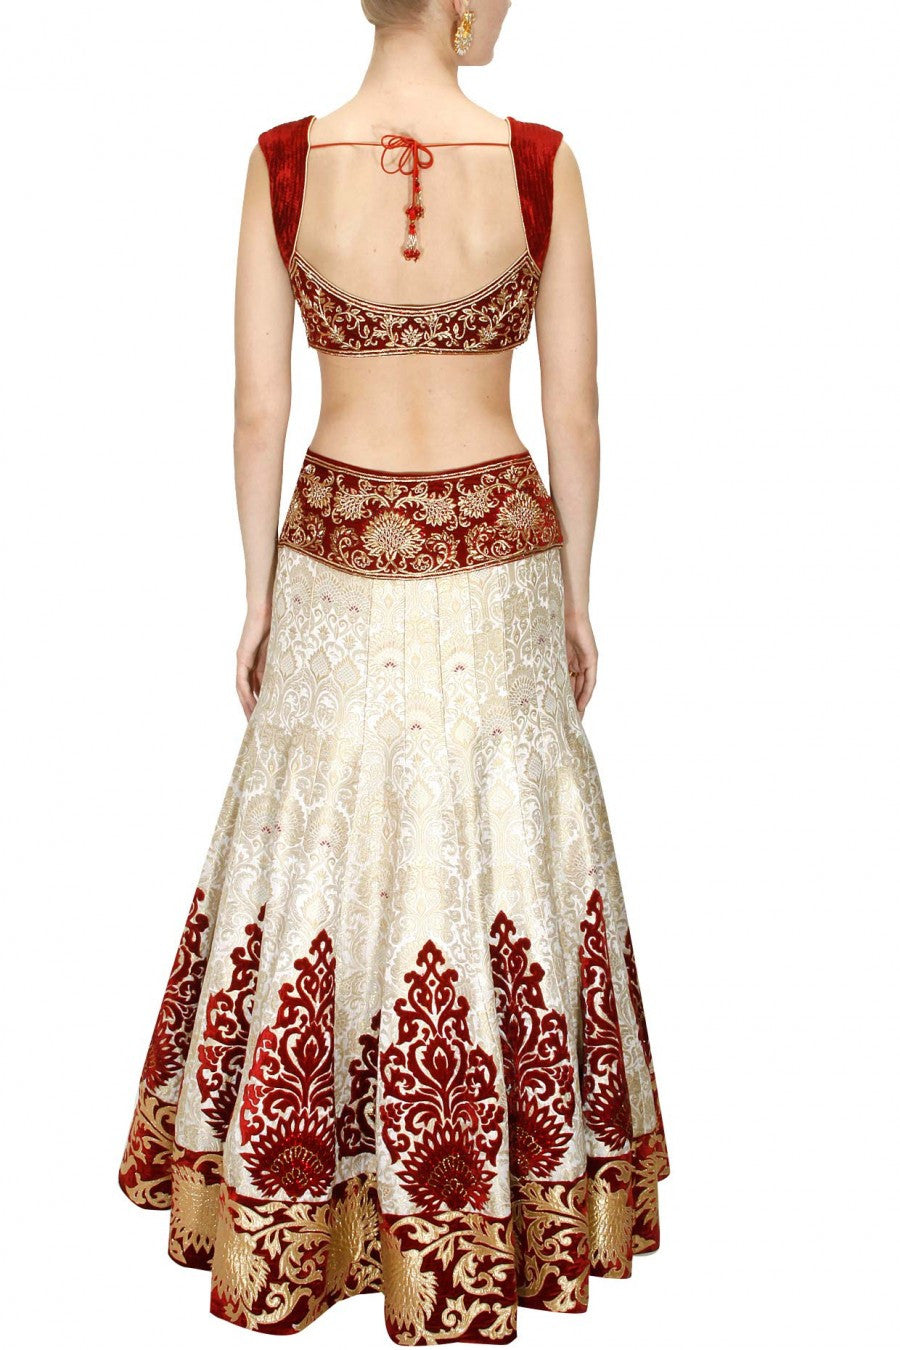 OffWhite and Maroon Lehenga Choli